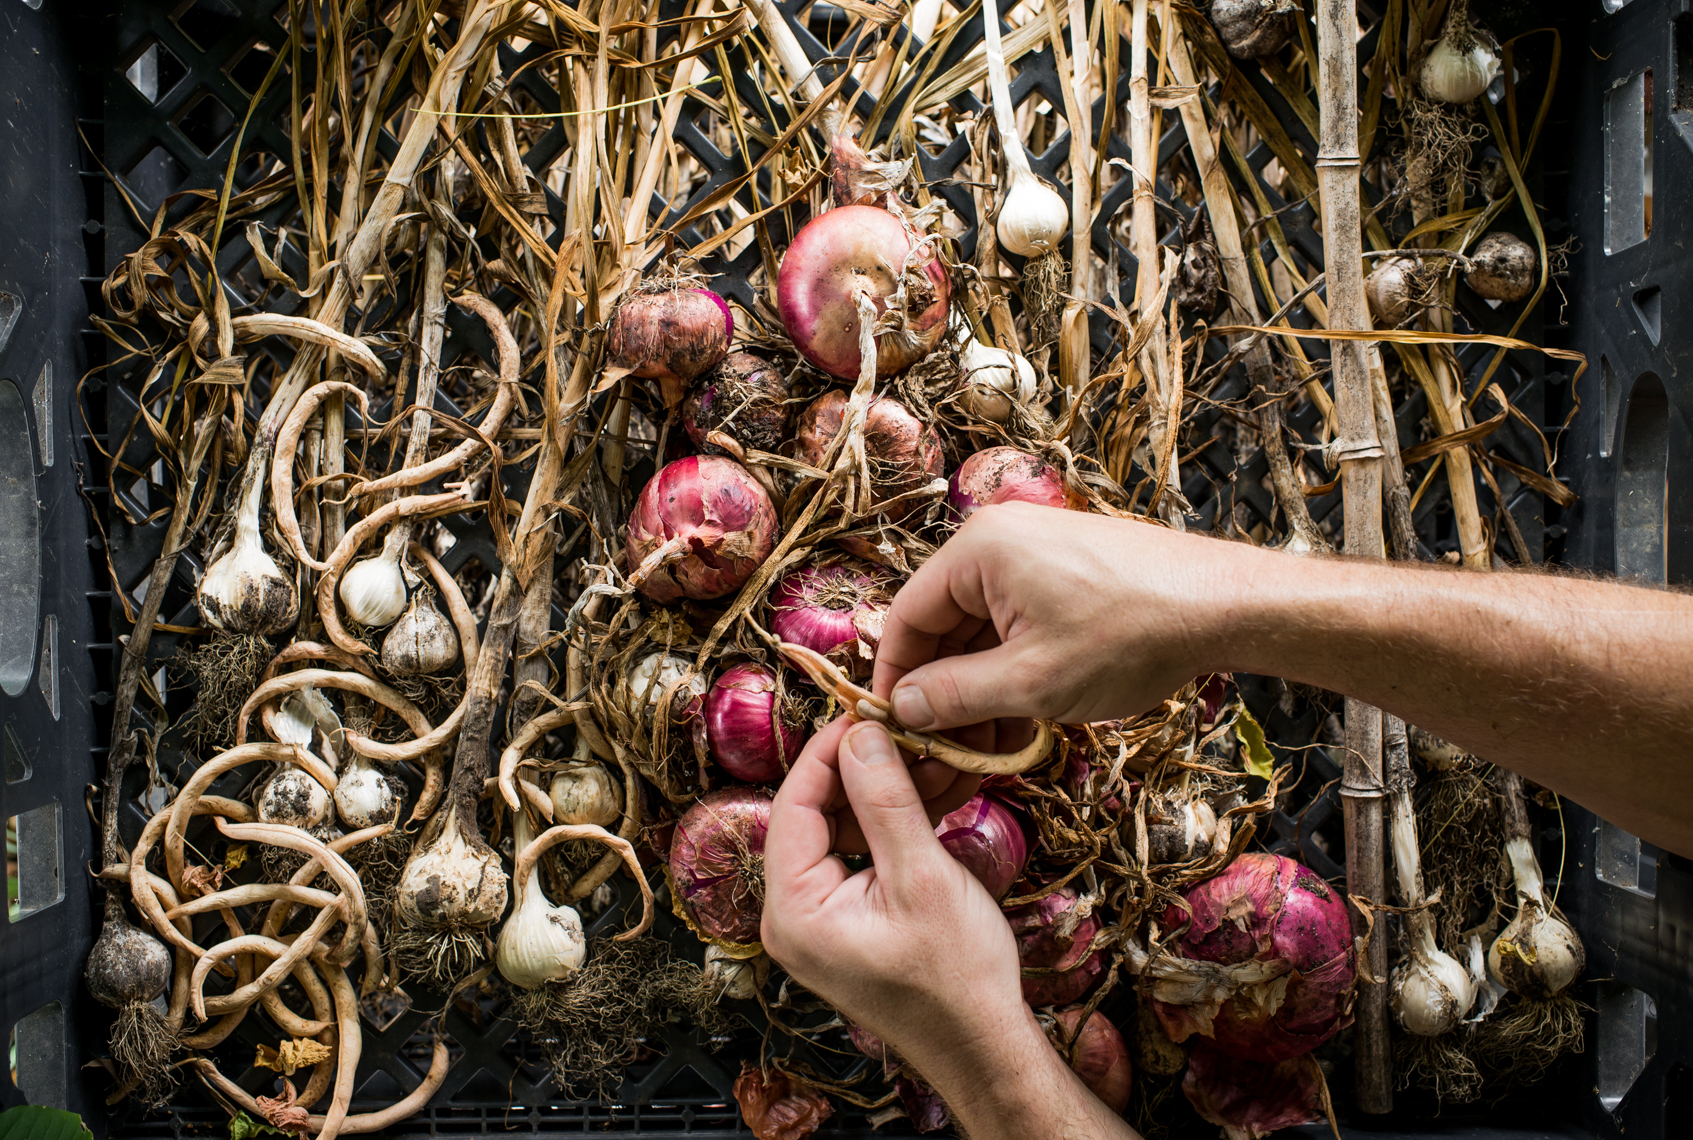 Onions, Garlic, Urban Organic Farm, Nashville, Tennessee, Food Photographer, Nashville food stylist , hands, lifestyle photographer, food photo, ingredients, gardening, grower, growing, farming